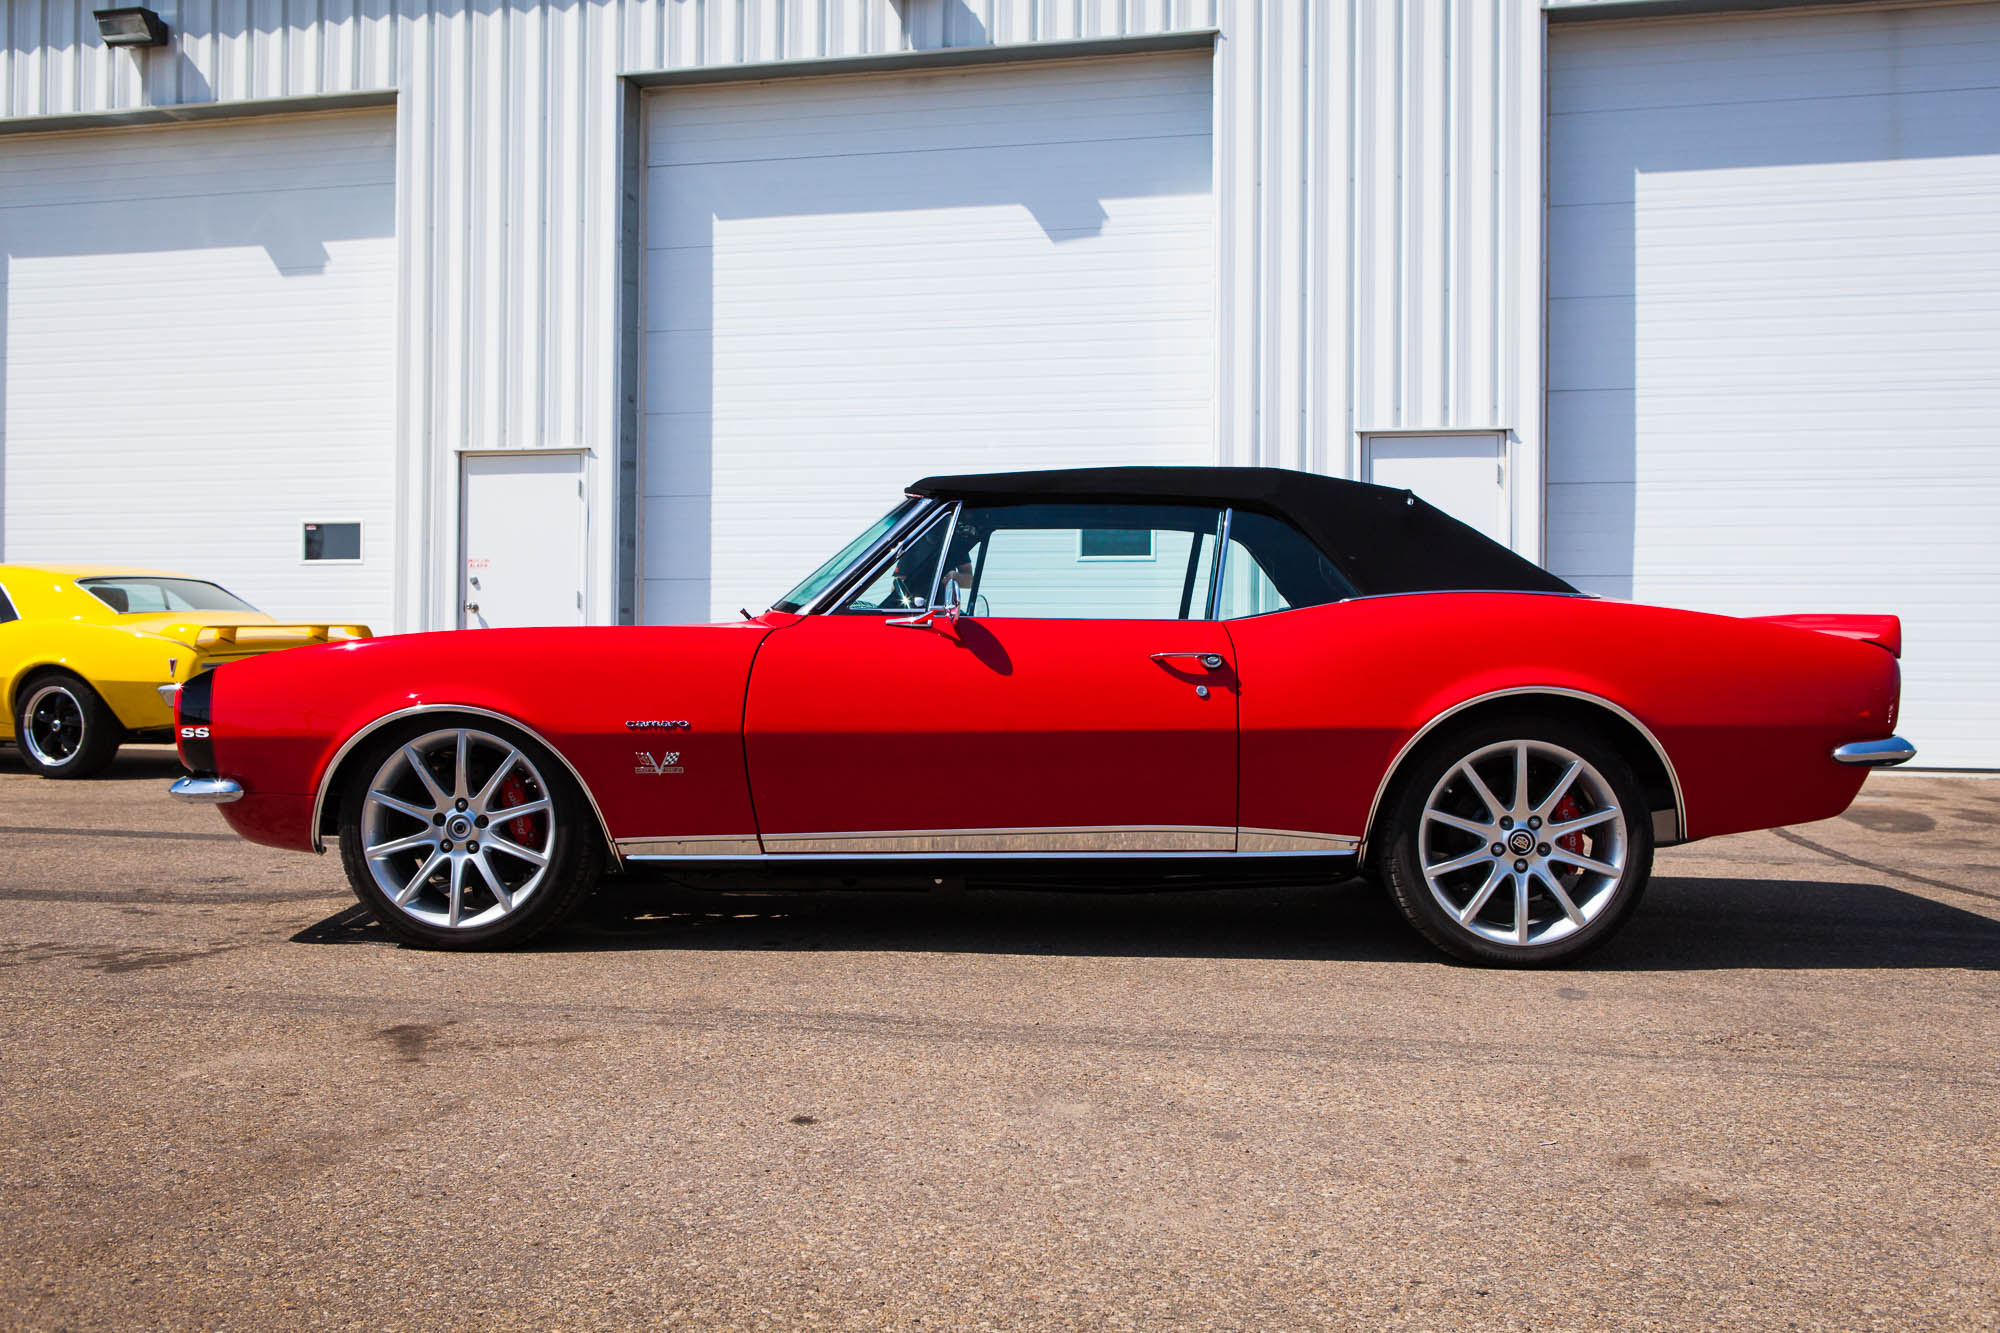 What Is Transmission >> 1967 Camaro Convertible - The Iron Garage